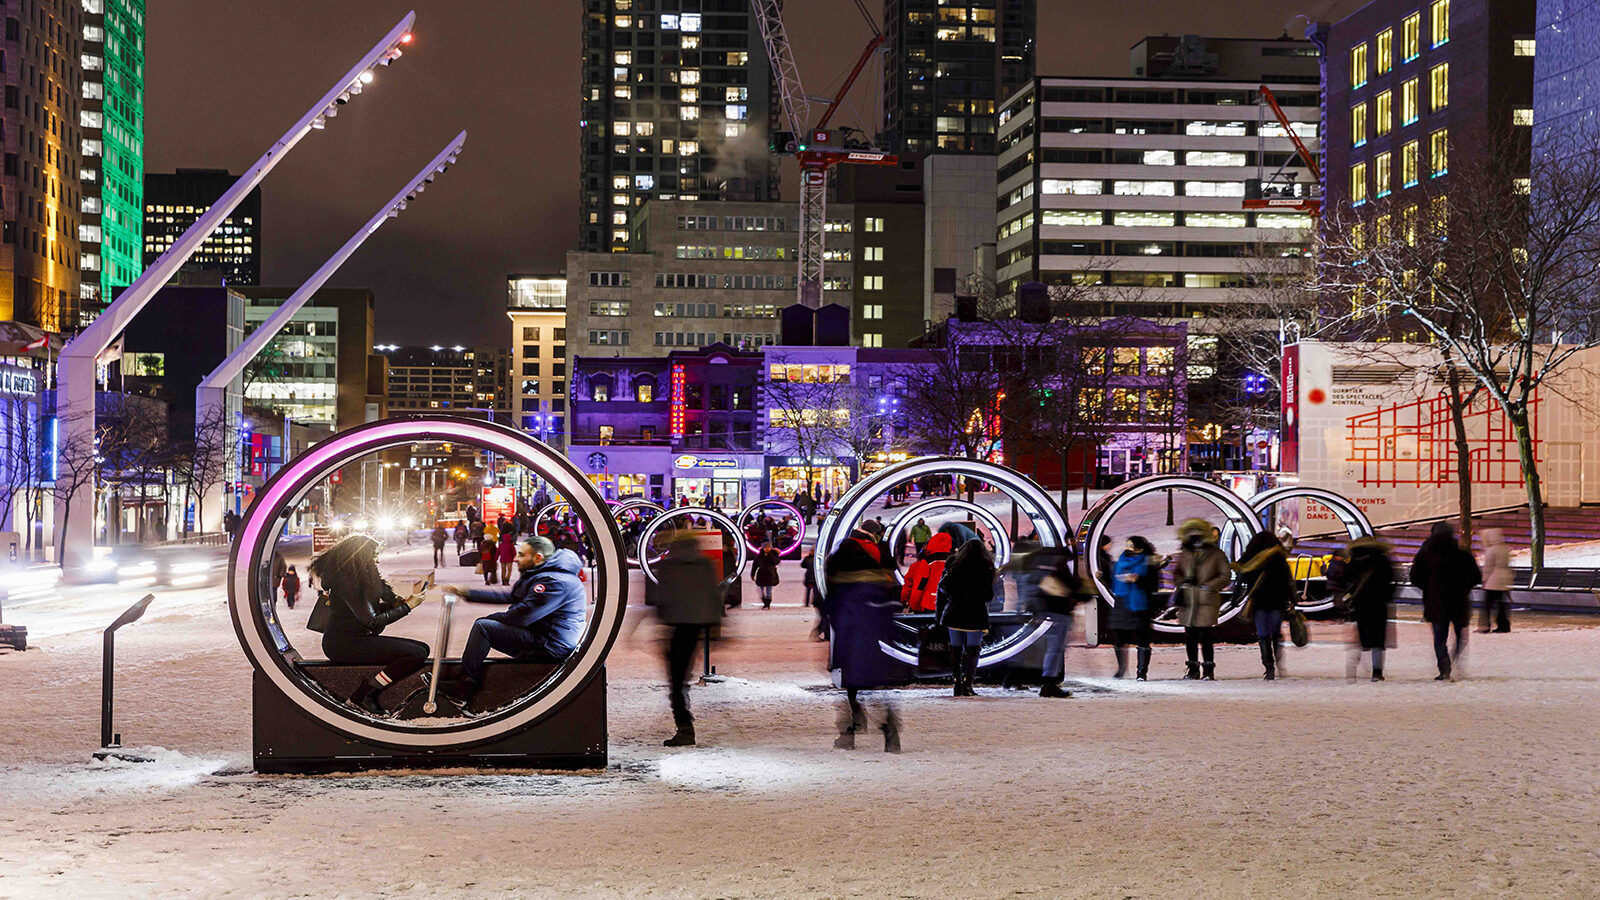 Montreal Does Light Therapy on an Urban Scale